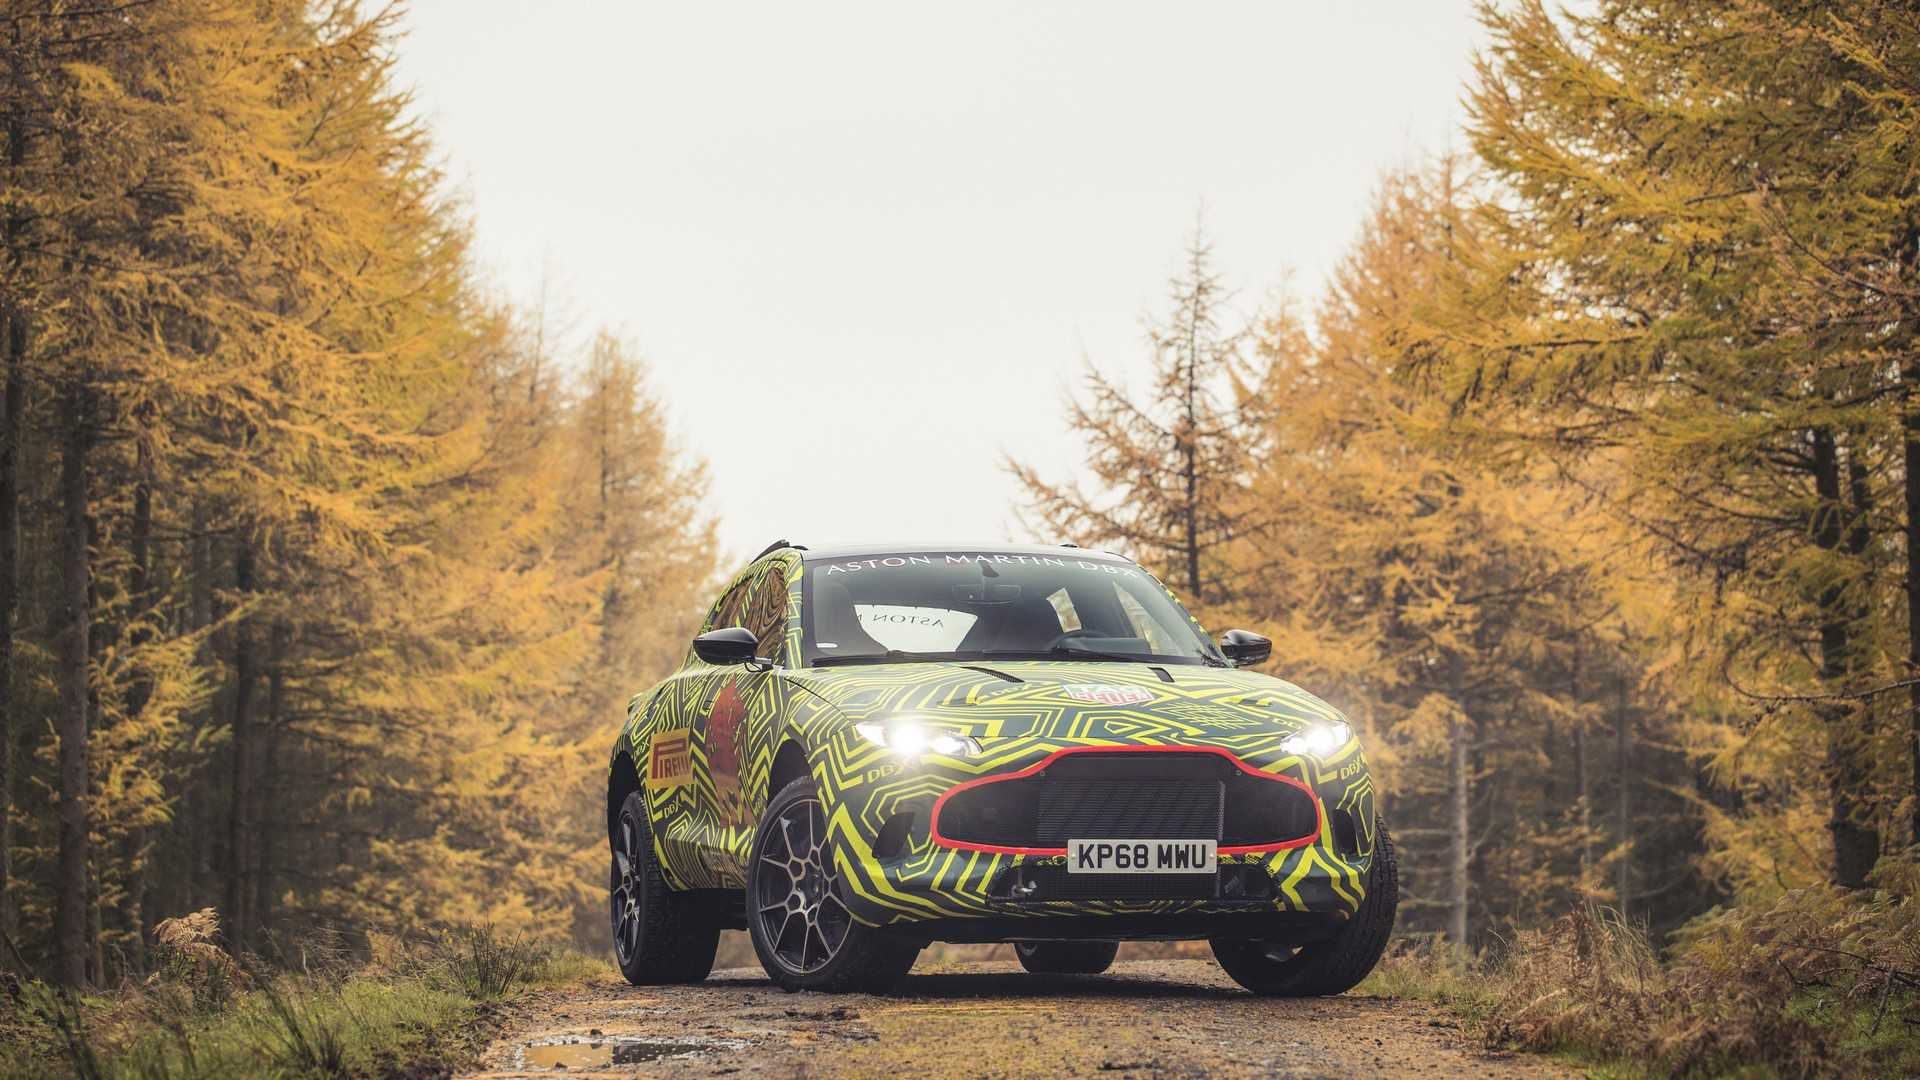 Aston Martin's first SUV in action - New DBX goes off-road